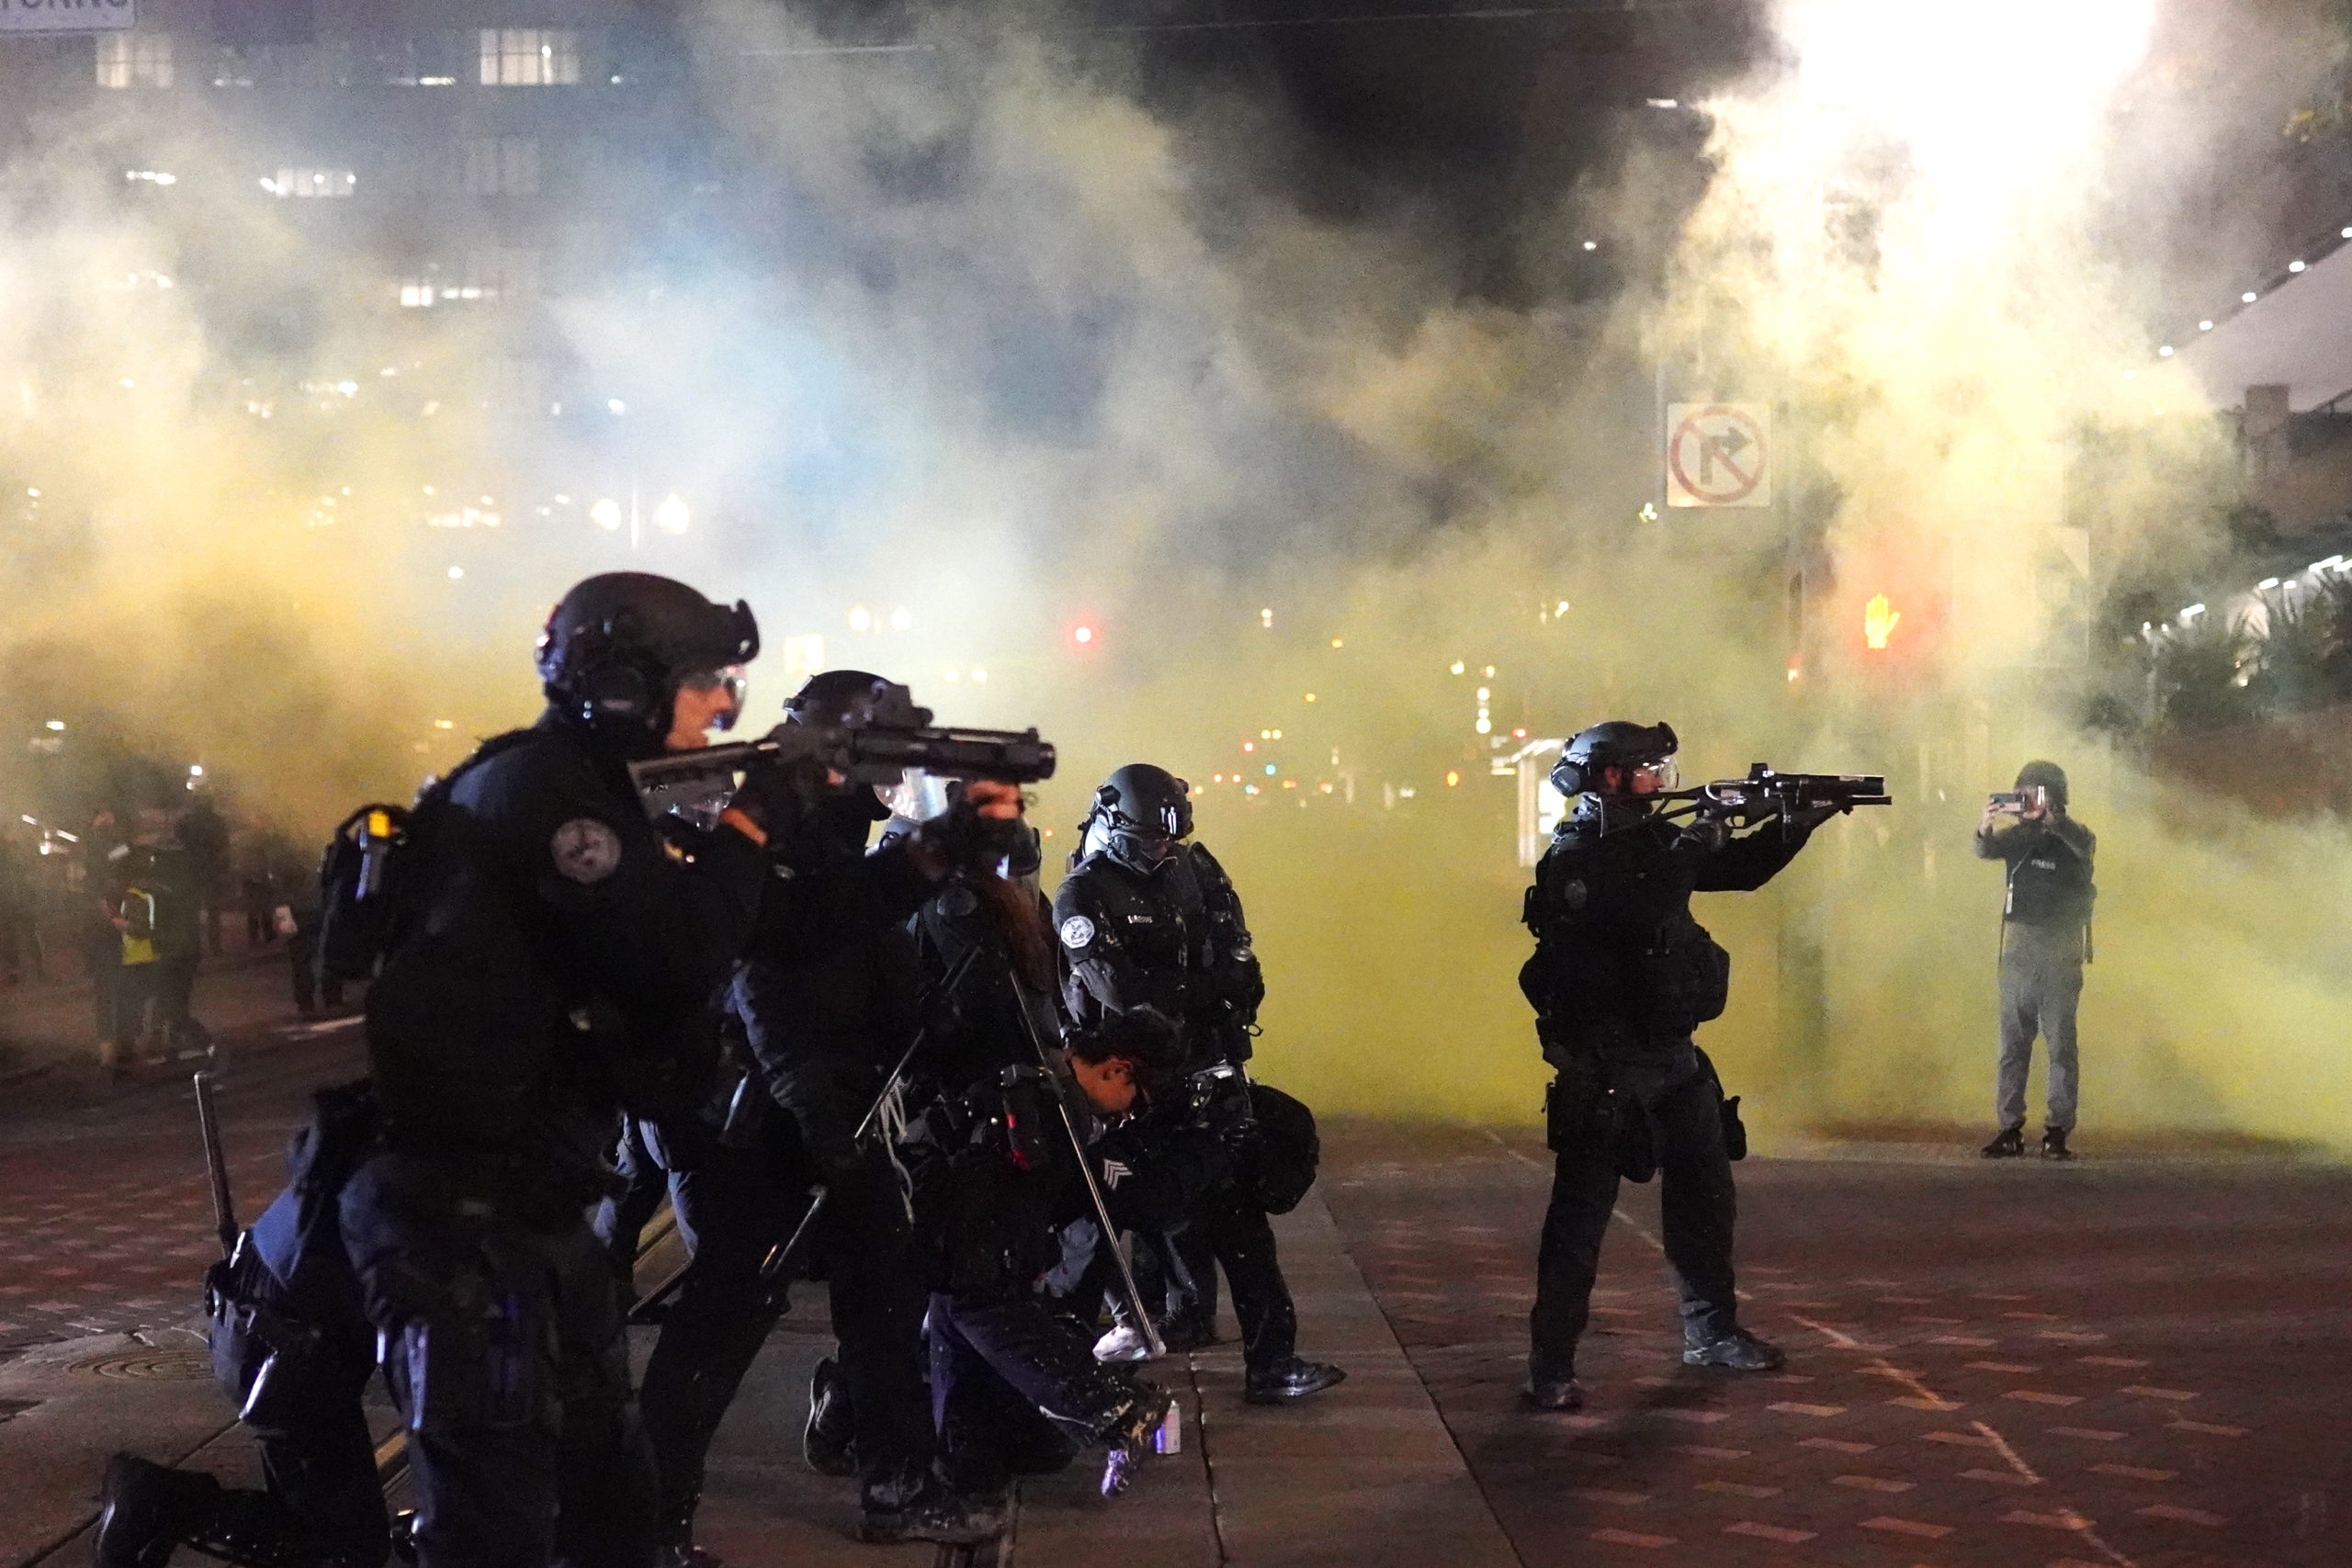 PORTLAND, OR - AUGUST 25: Portland police officers fires less lethal rounds through smoke while dispersing a crowd of about 150 people from Portland City Hall on August 25, 2020 in Portland, Oregon. Crowds chanted in support of Kenosha Wisconsin on the 90th night of protests Tuesday, where demonstrations have continued for days following the police shooting of Jacob Blake. (Photo by Nathan Howard/Getty Images)